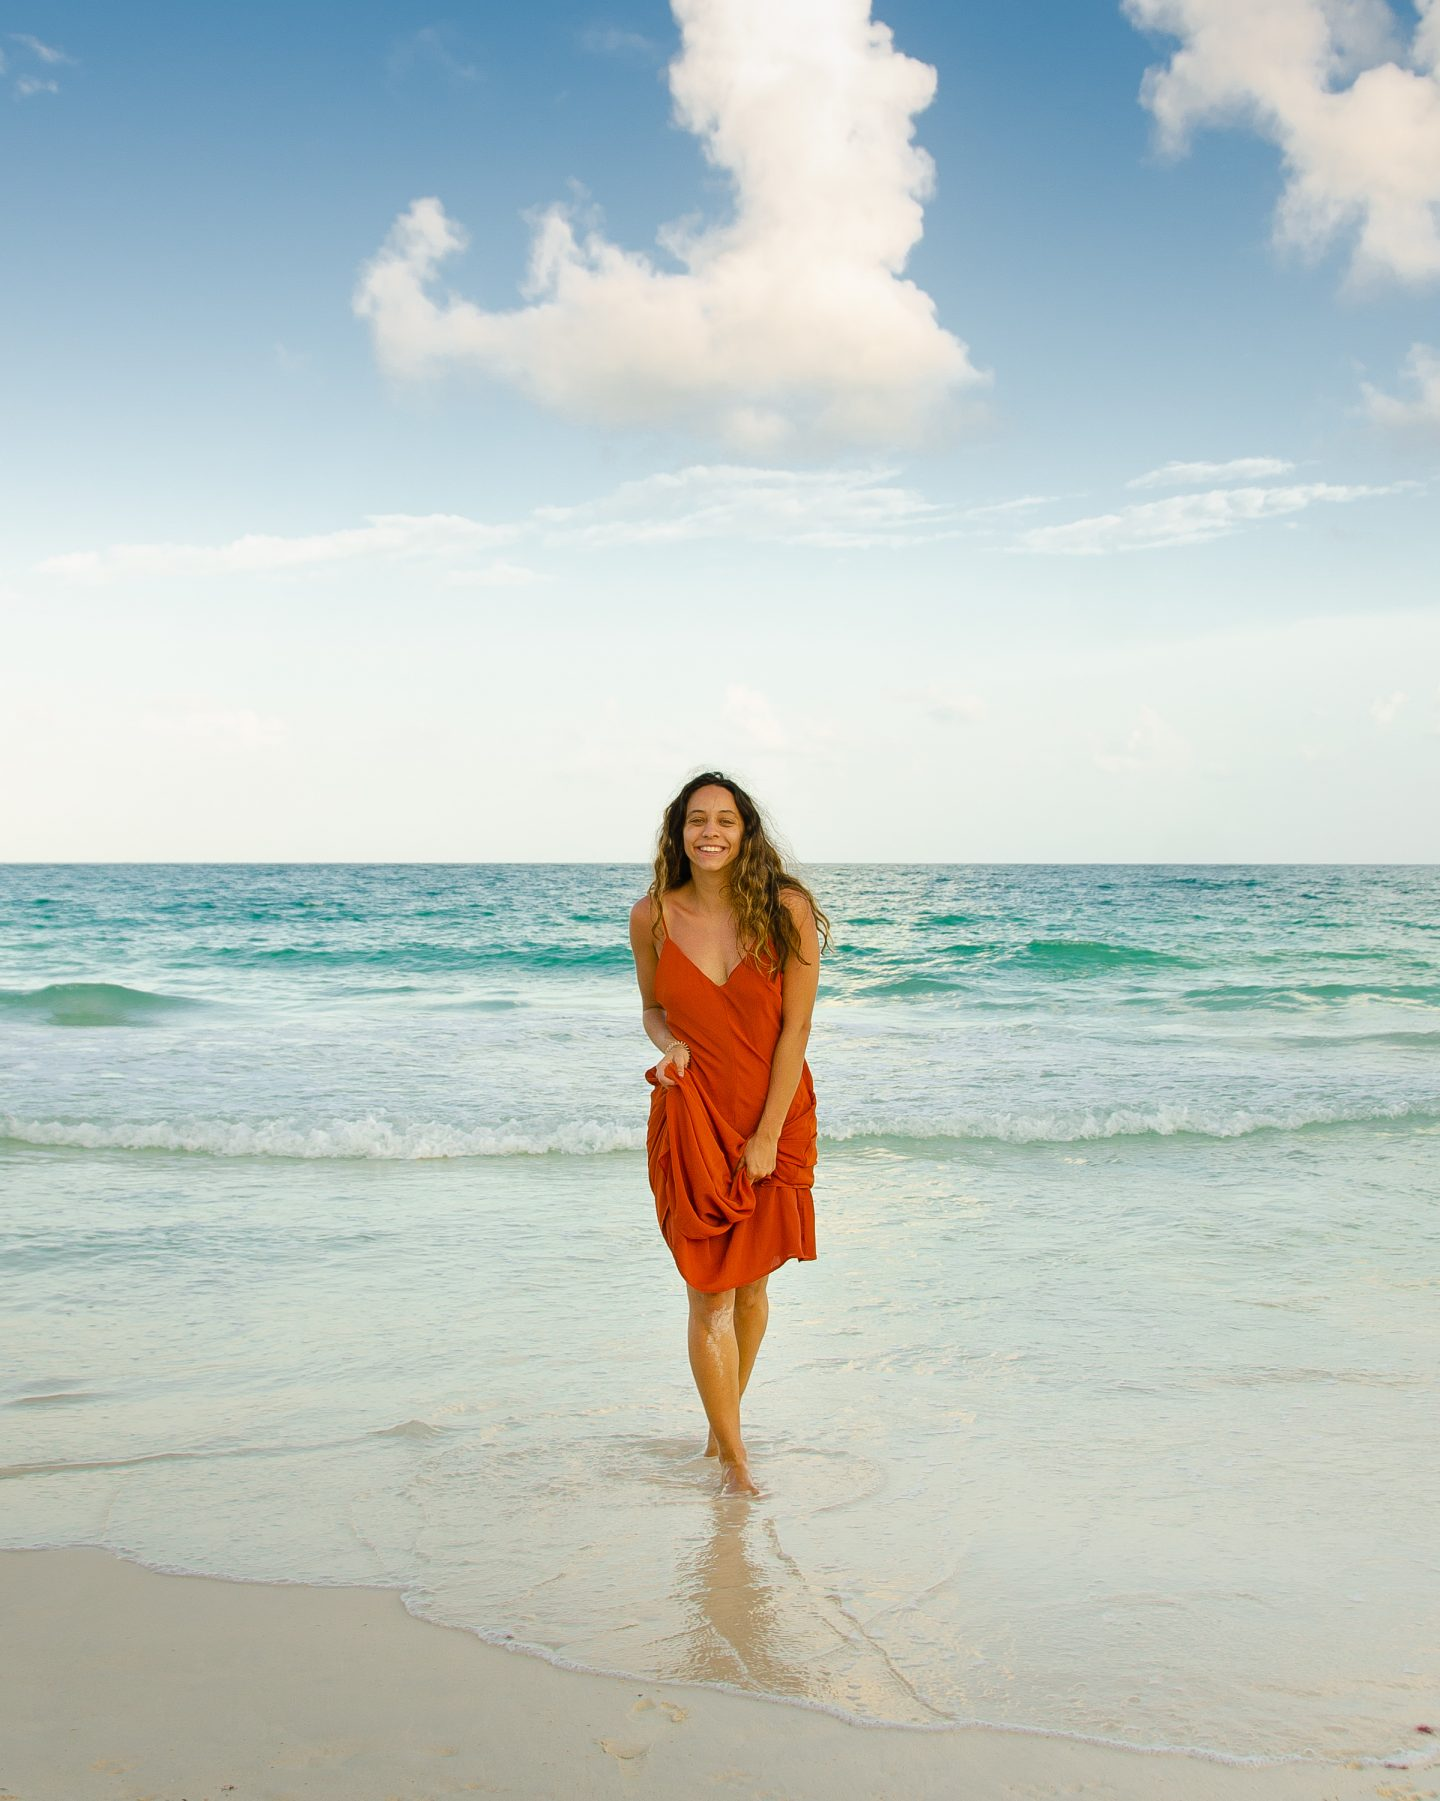 things to do in tulum mexico as a solo female traveler